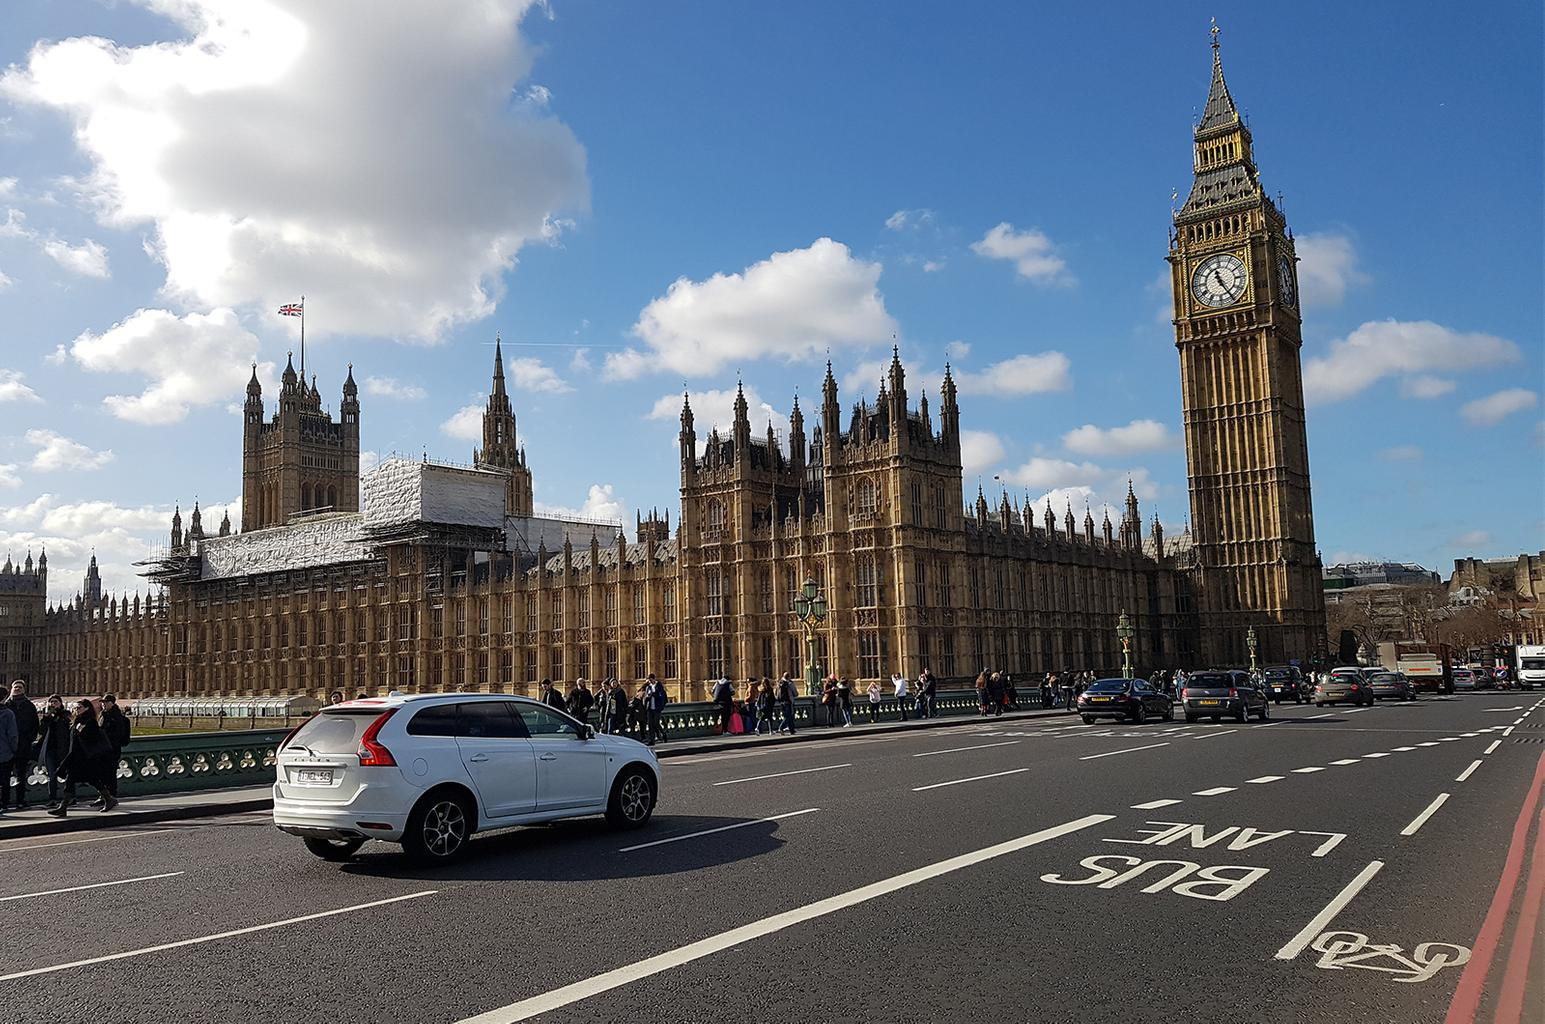 London Congestion Charge fines rise to £160